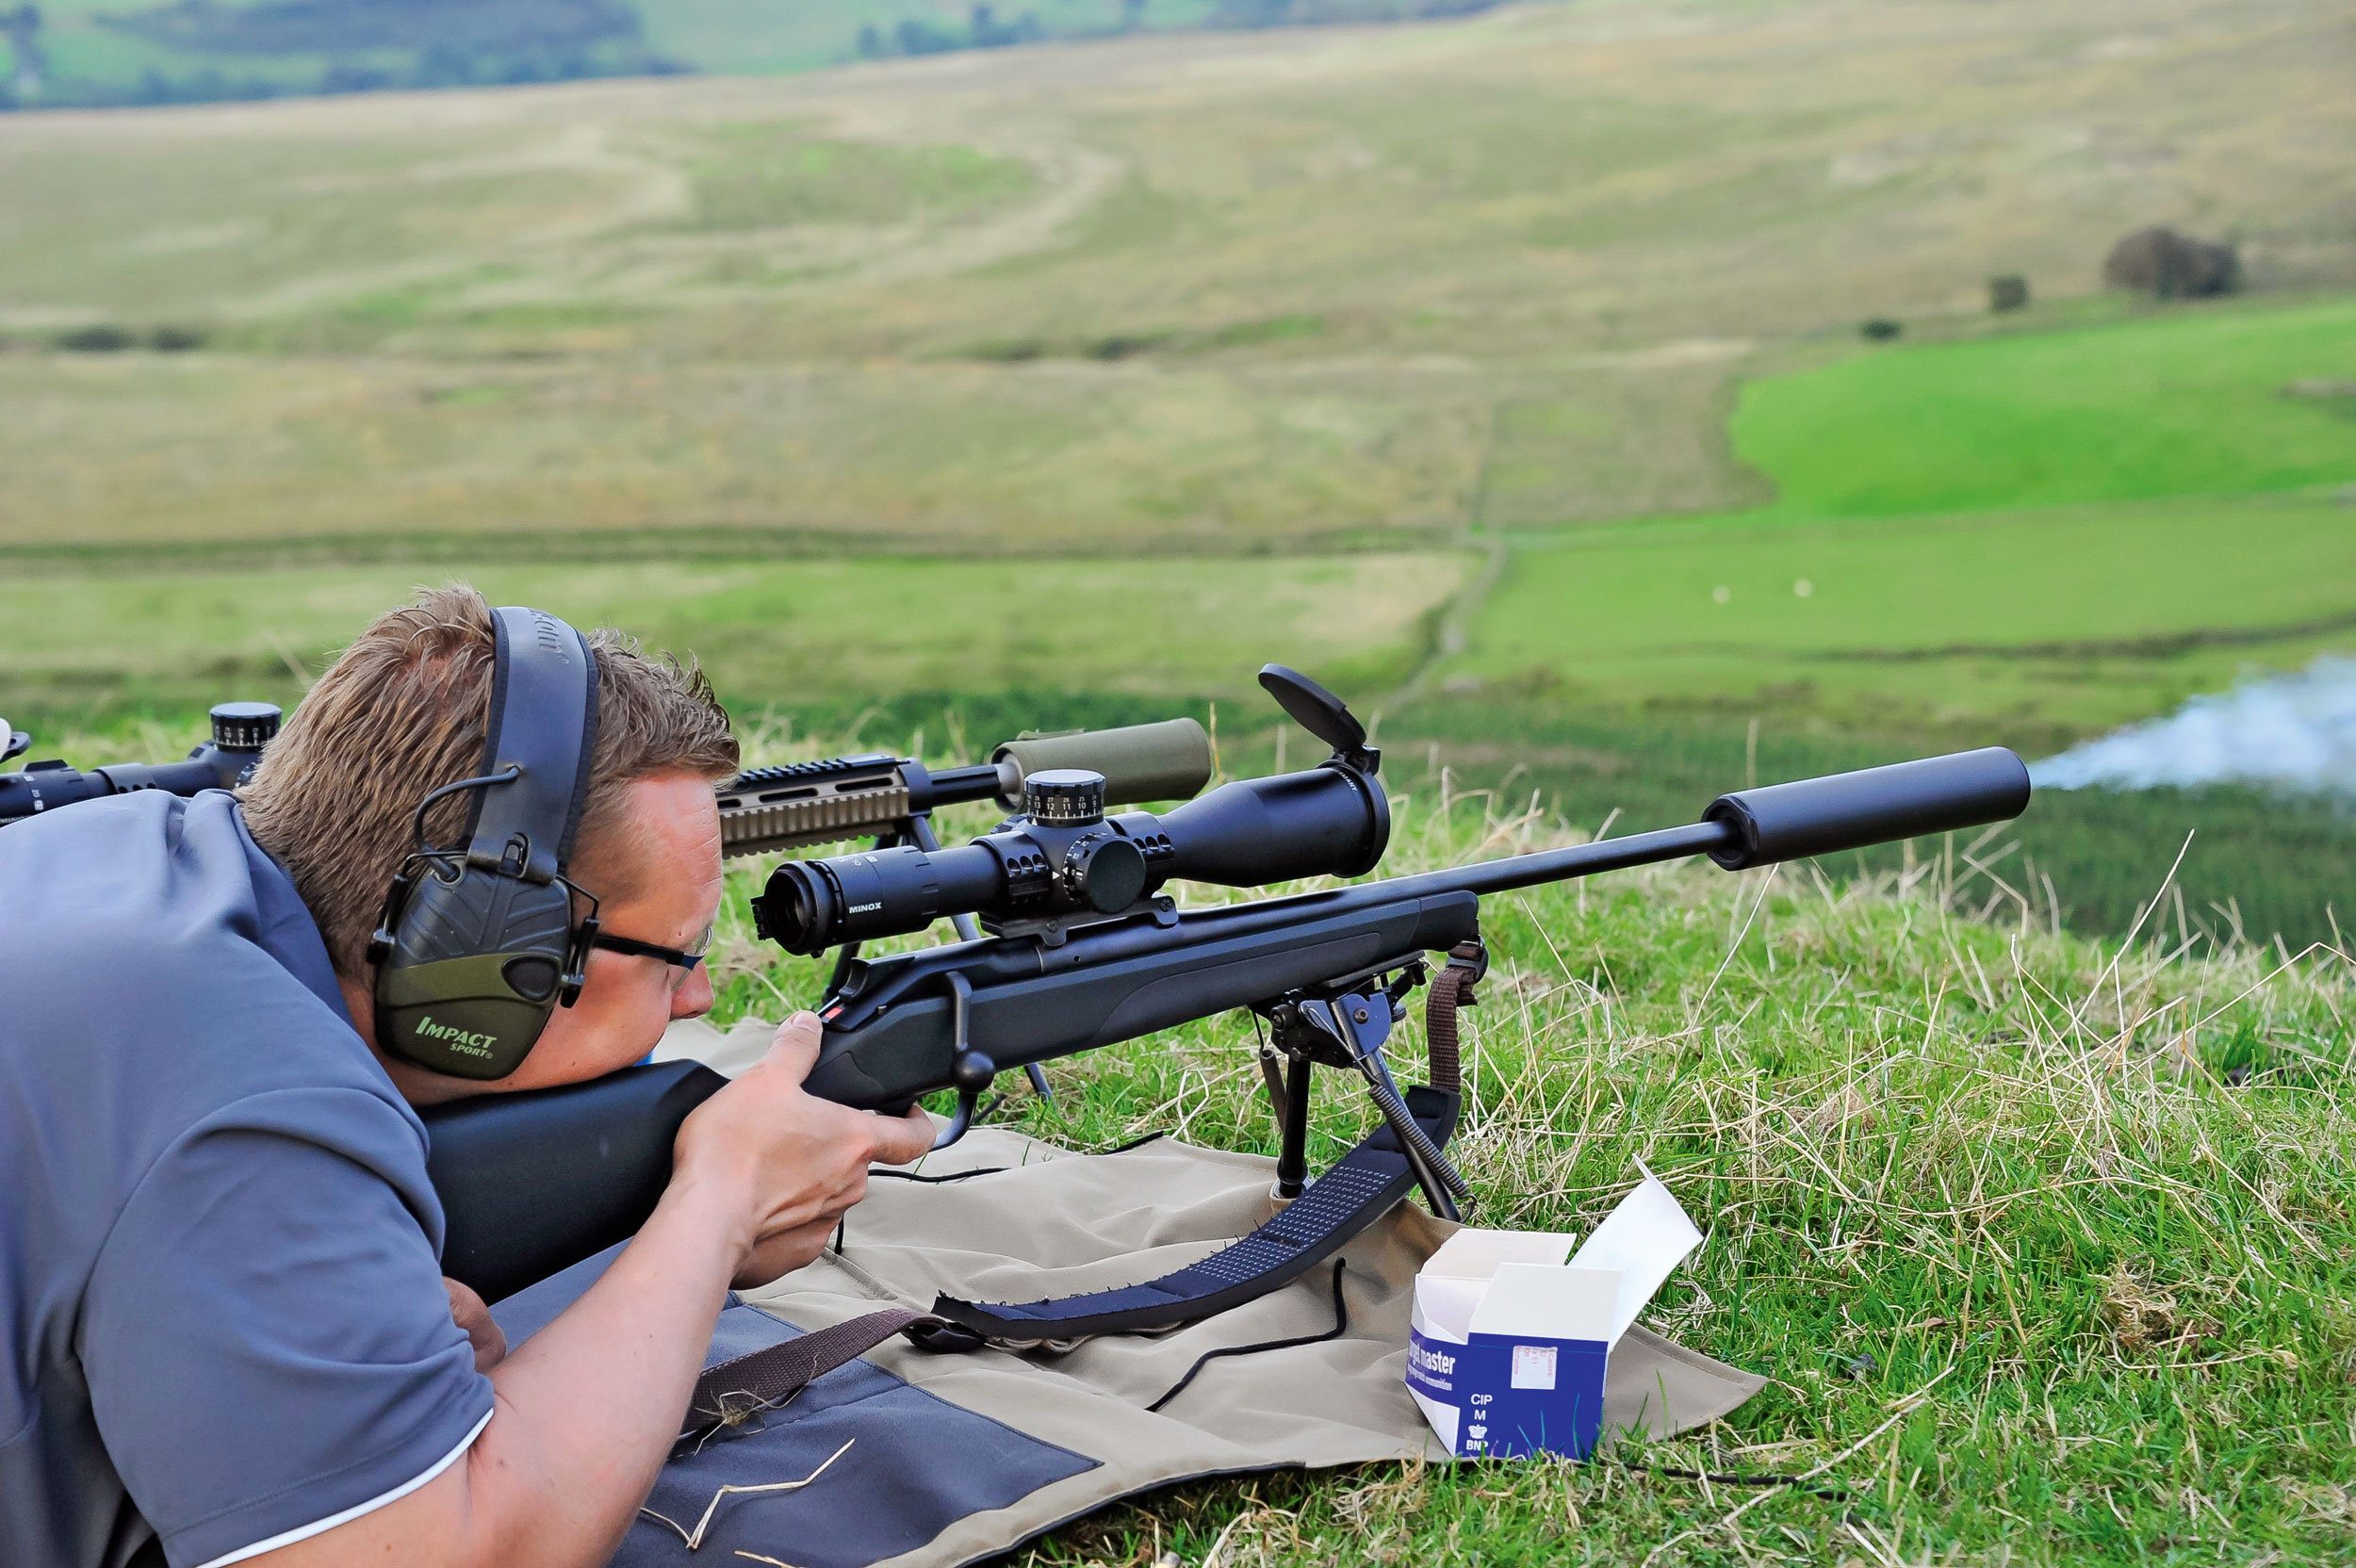 Long-range shooting with the MINOX ZP5 riflescope